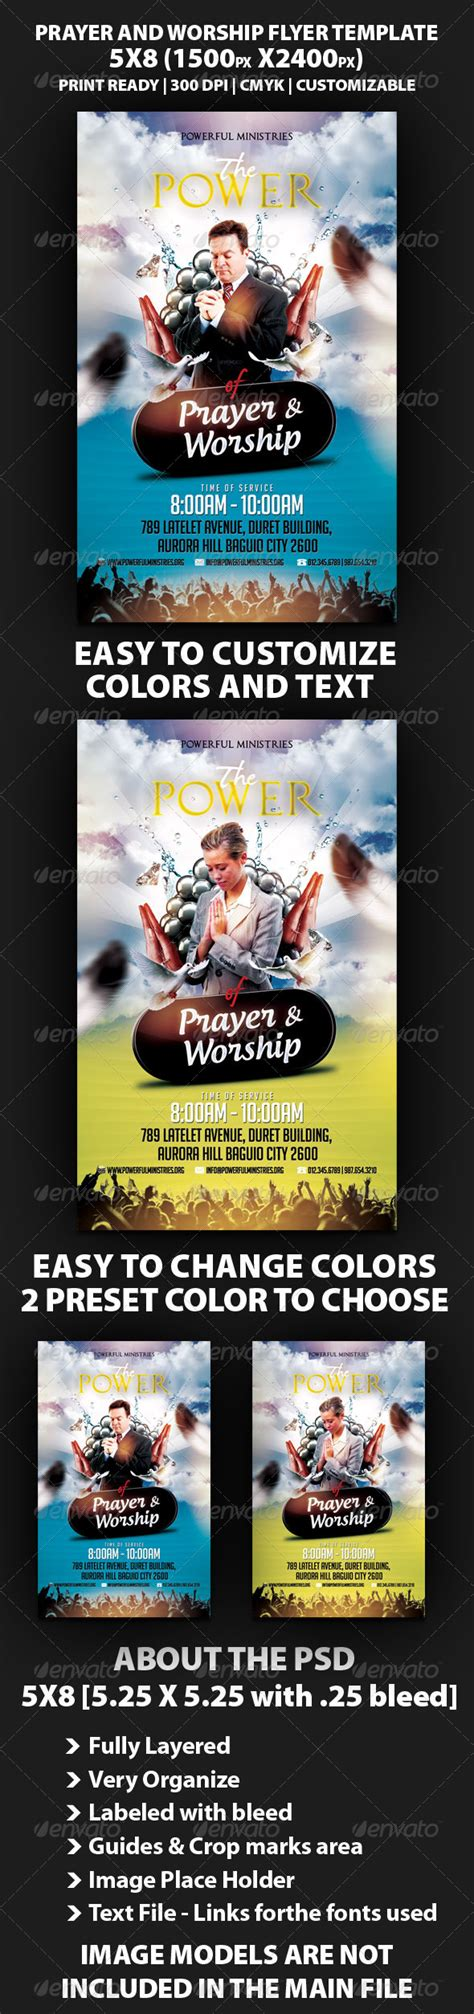 The Power Of Prayer And Worship Flyer Sourcecodes Pro Prayer Flyer Template